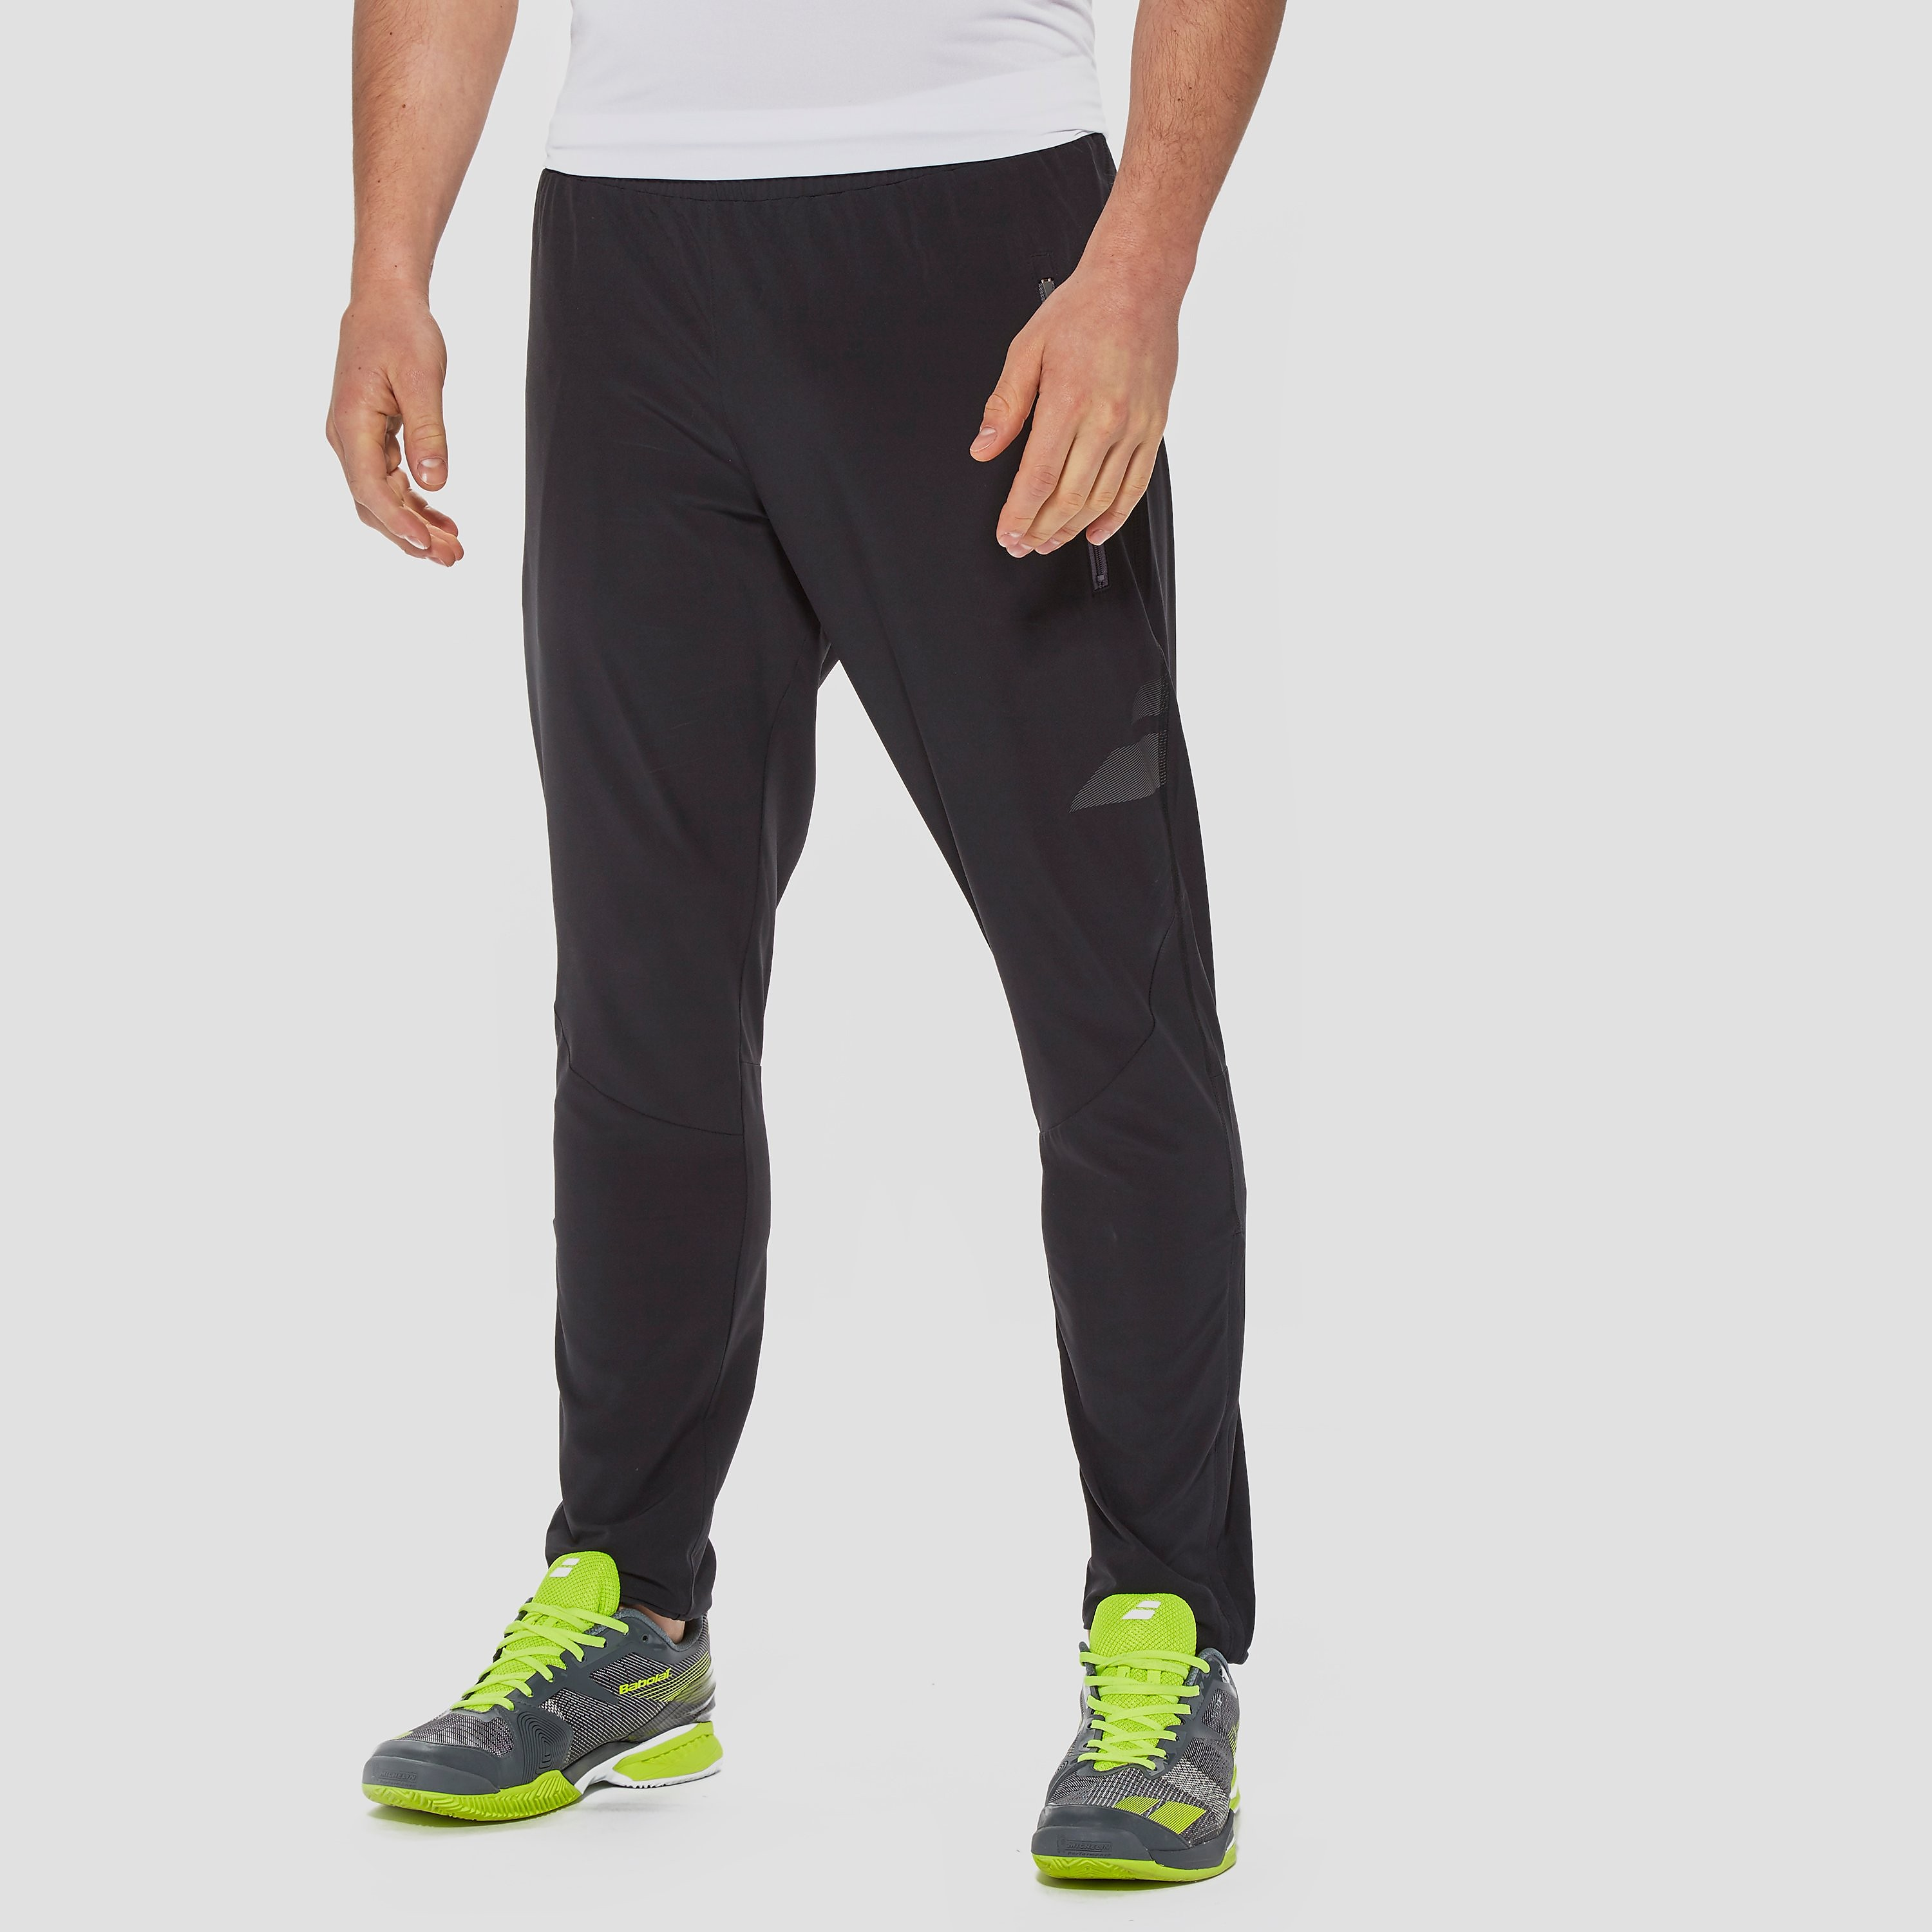 Babolat Performance Men's Tennis Trousers